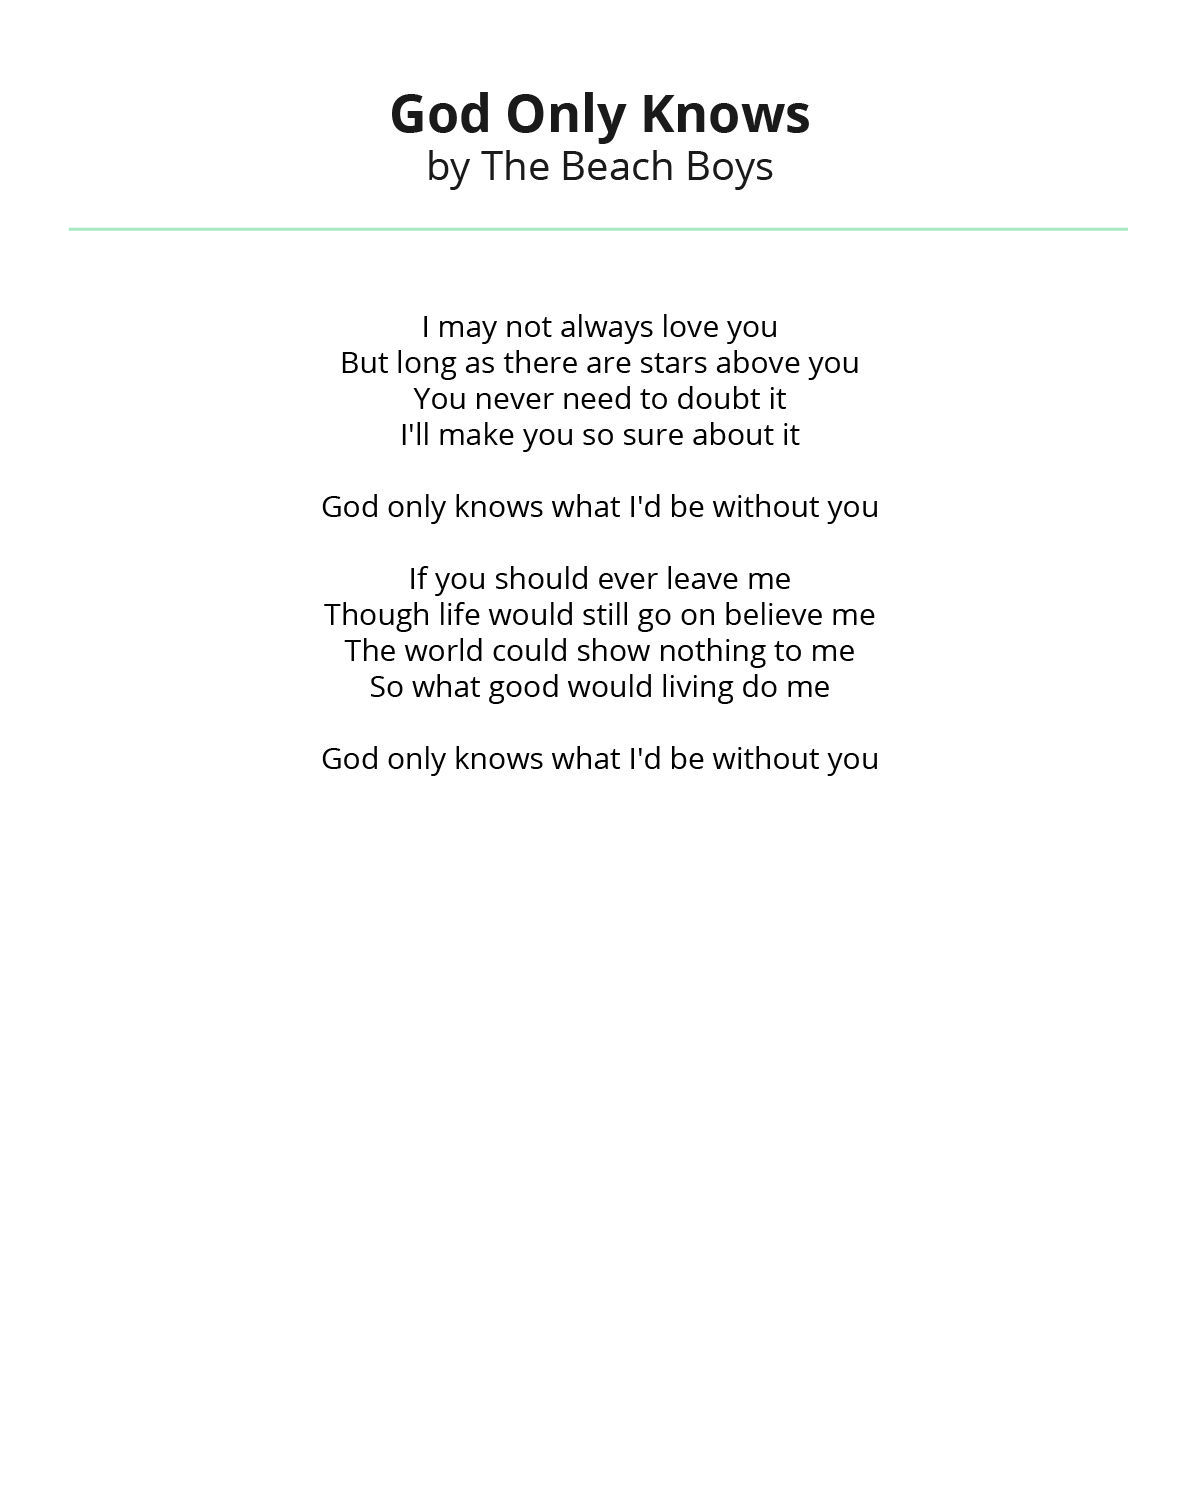 God Only Knows By The Beach Boys Wedding Reading Wedding Readings Wedding Humor Love Poems Wedding